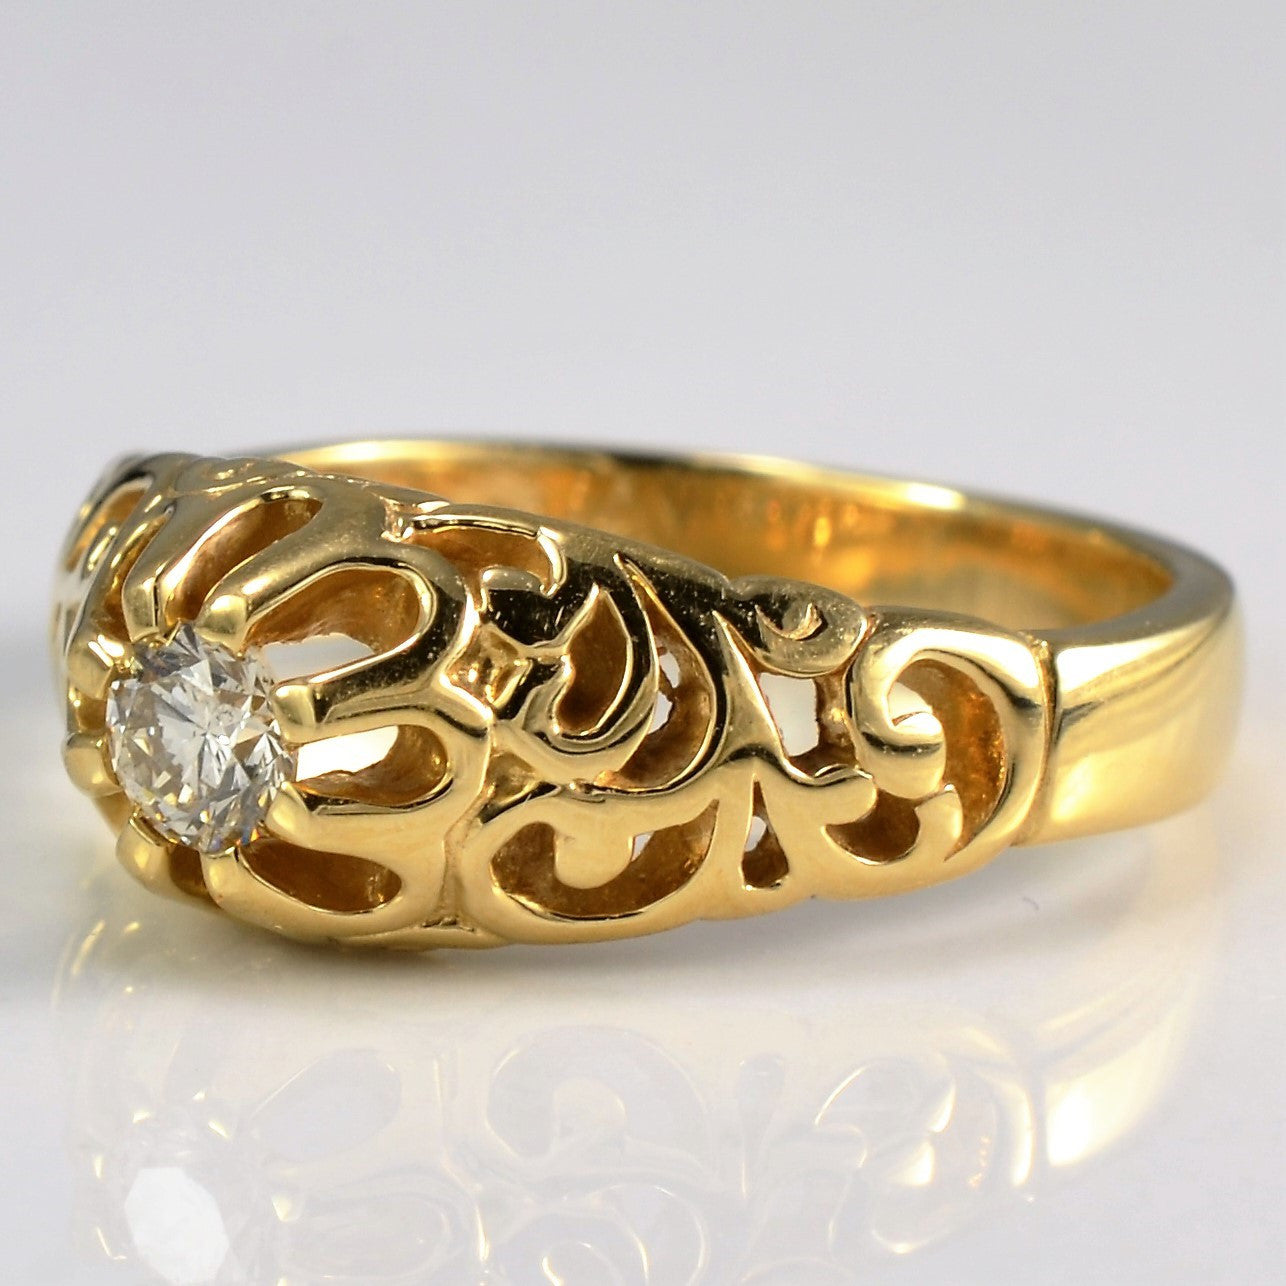 Vintage Filigree Diamond Ring | 0.16 ct, SZ 6.25 |